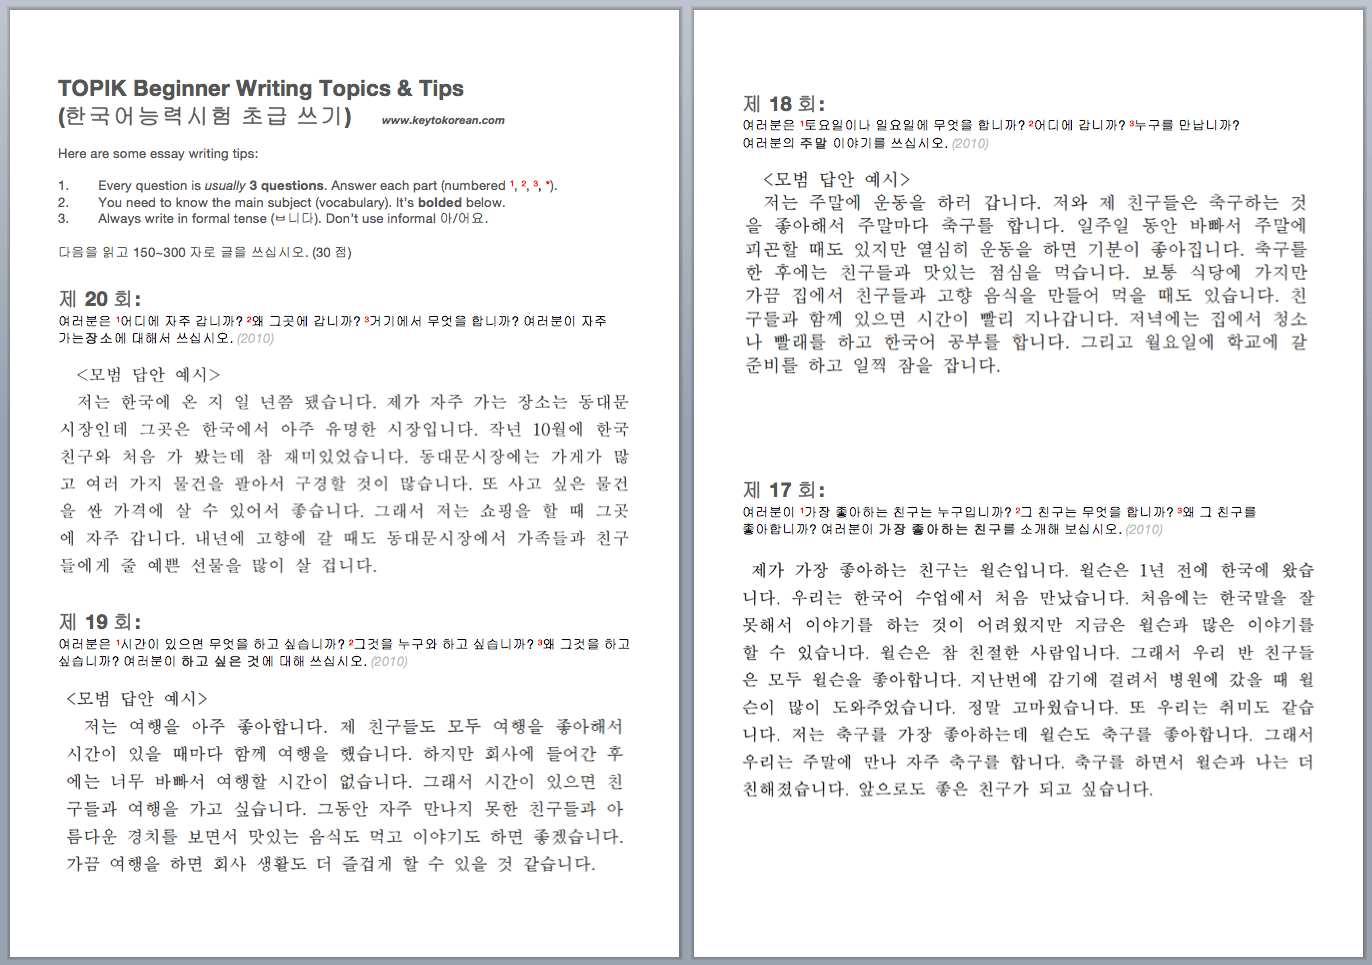 topik beginner writing samples tests key to korean why were these writing samples so great simply i could see some of the grammar structures and vocabulary that would give me more points on the test if i